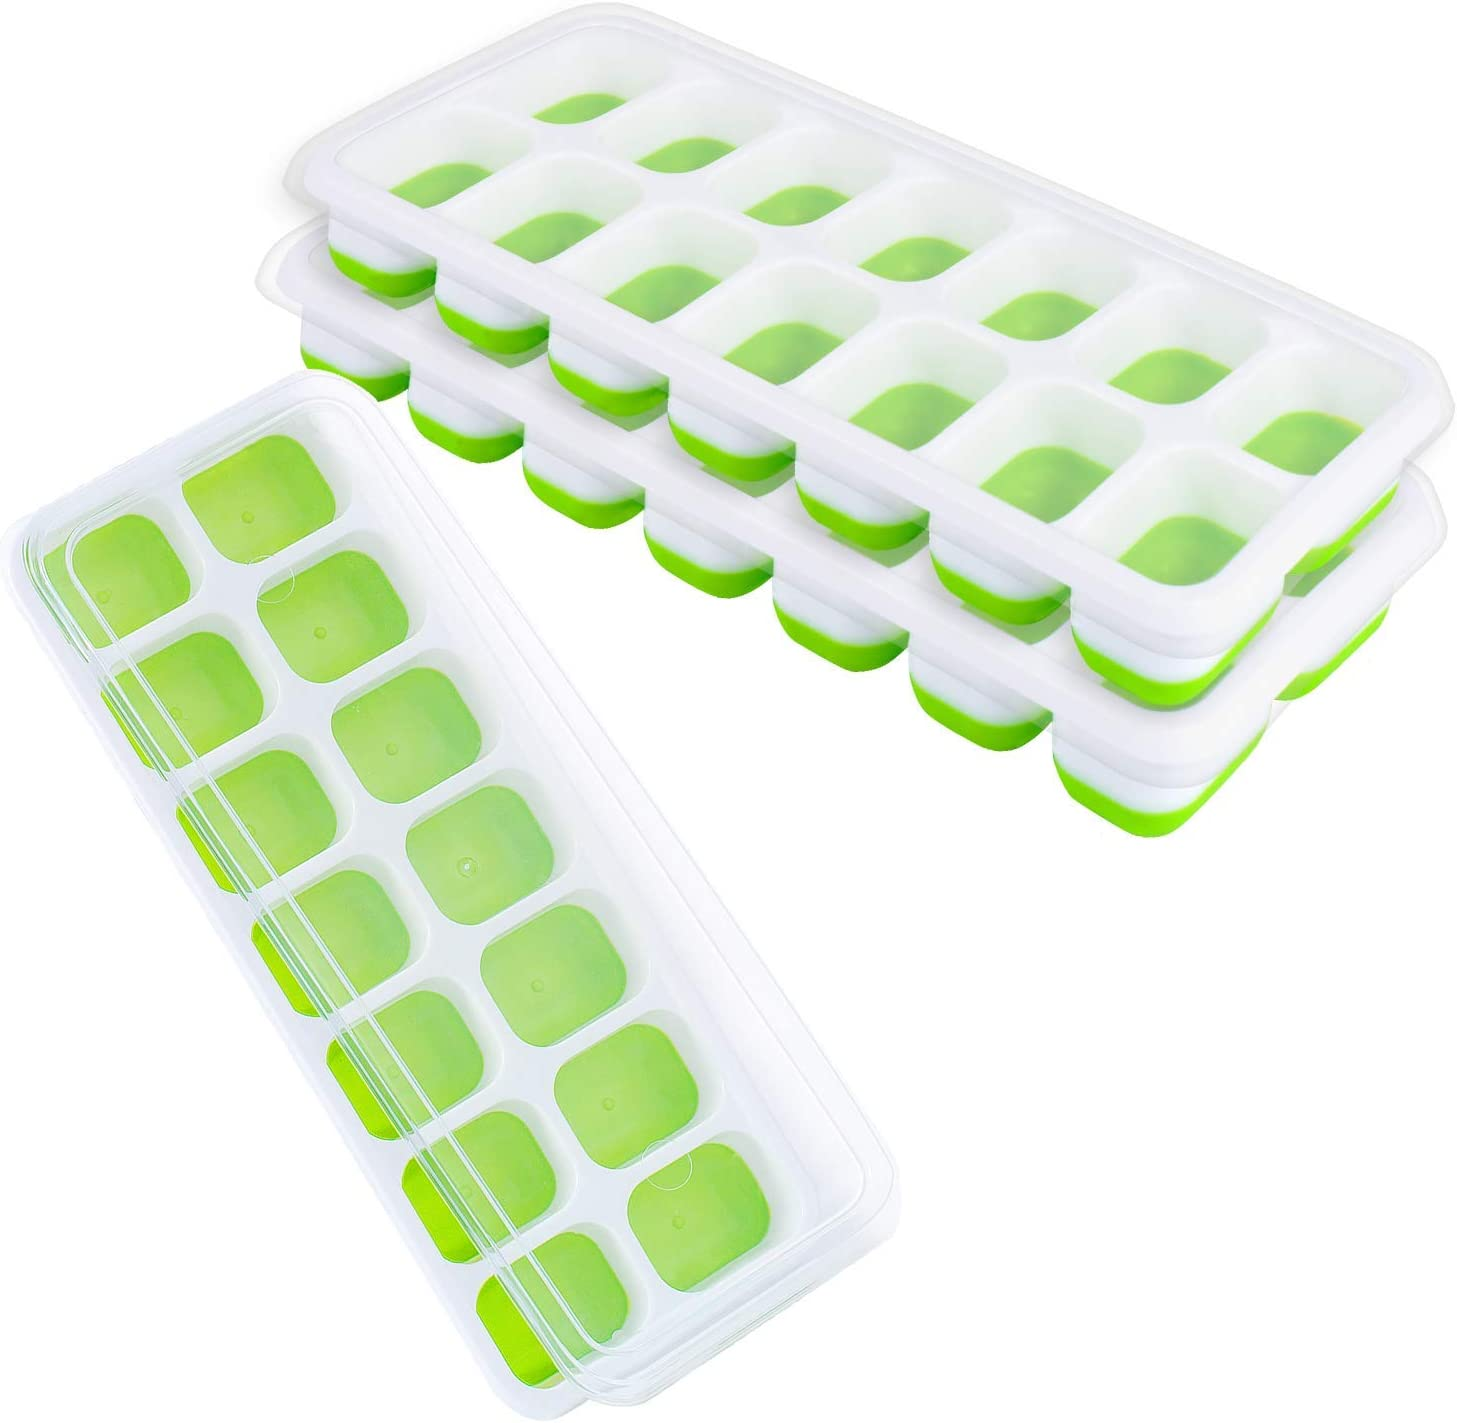 Ice Cube Trays, 3 Pack Silicone Easy-Release and Flexible Ice Trays with Spill-Resistant Removable Lid, Durable and Dishwasher Safe